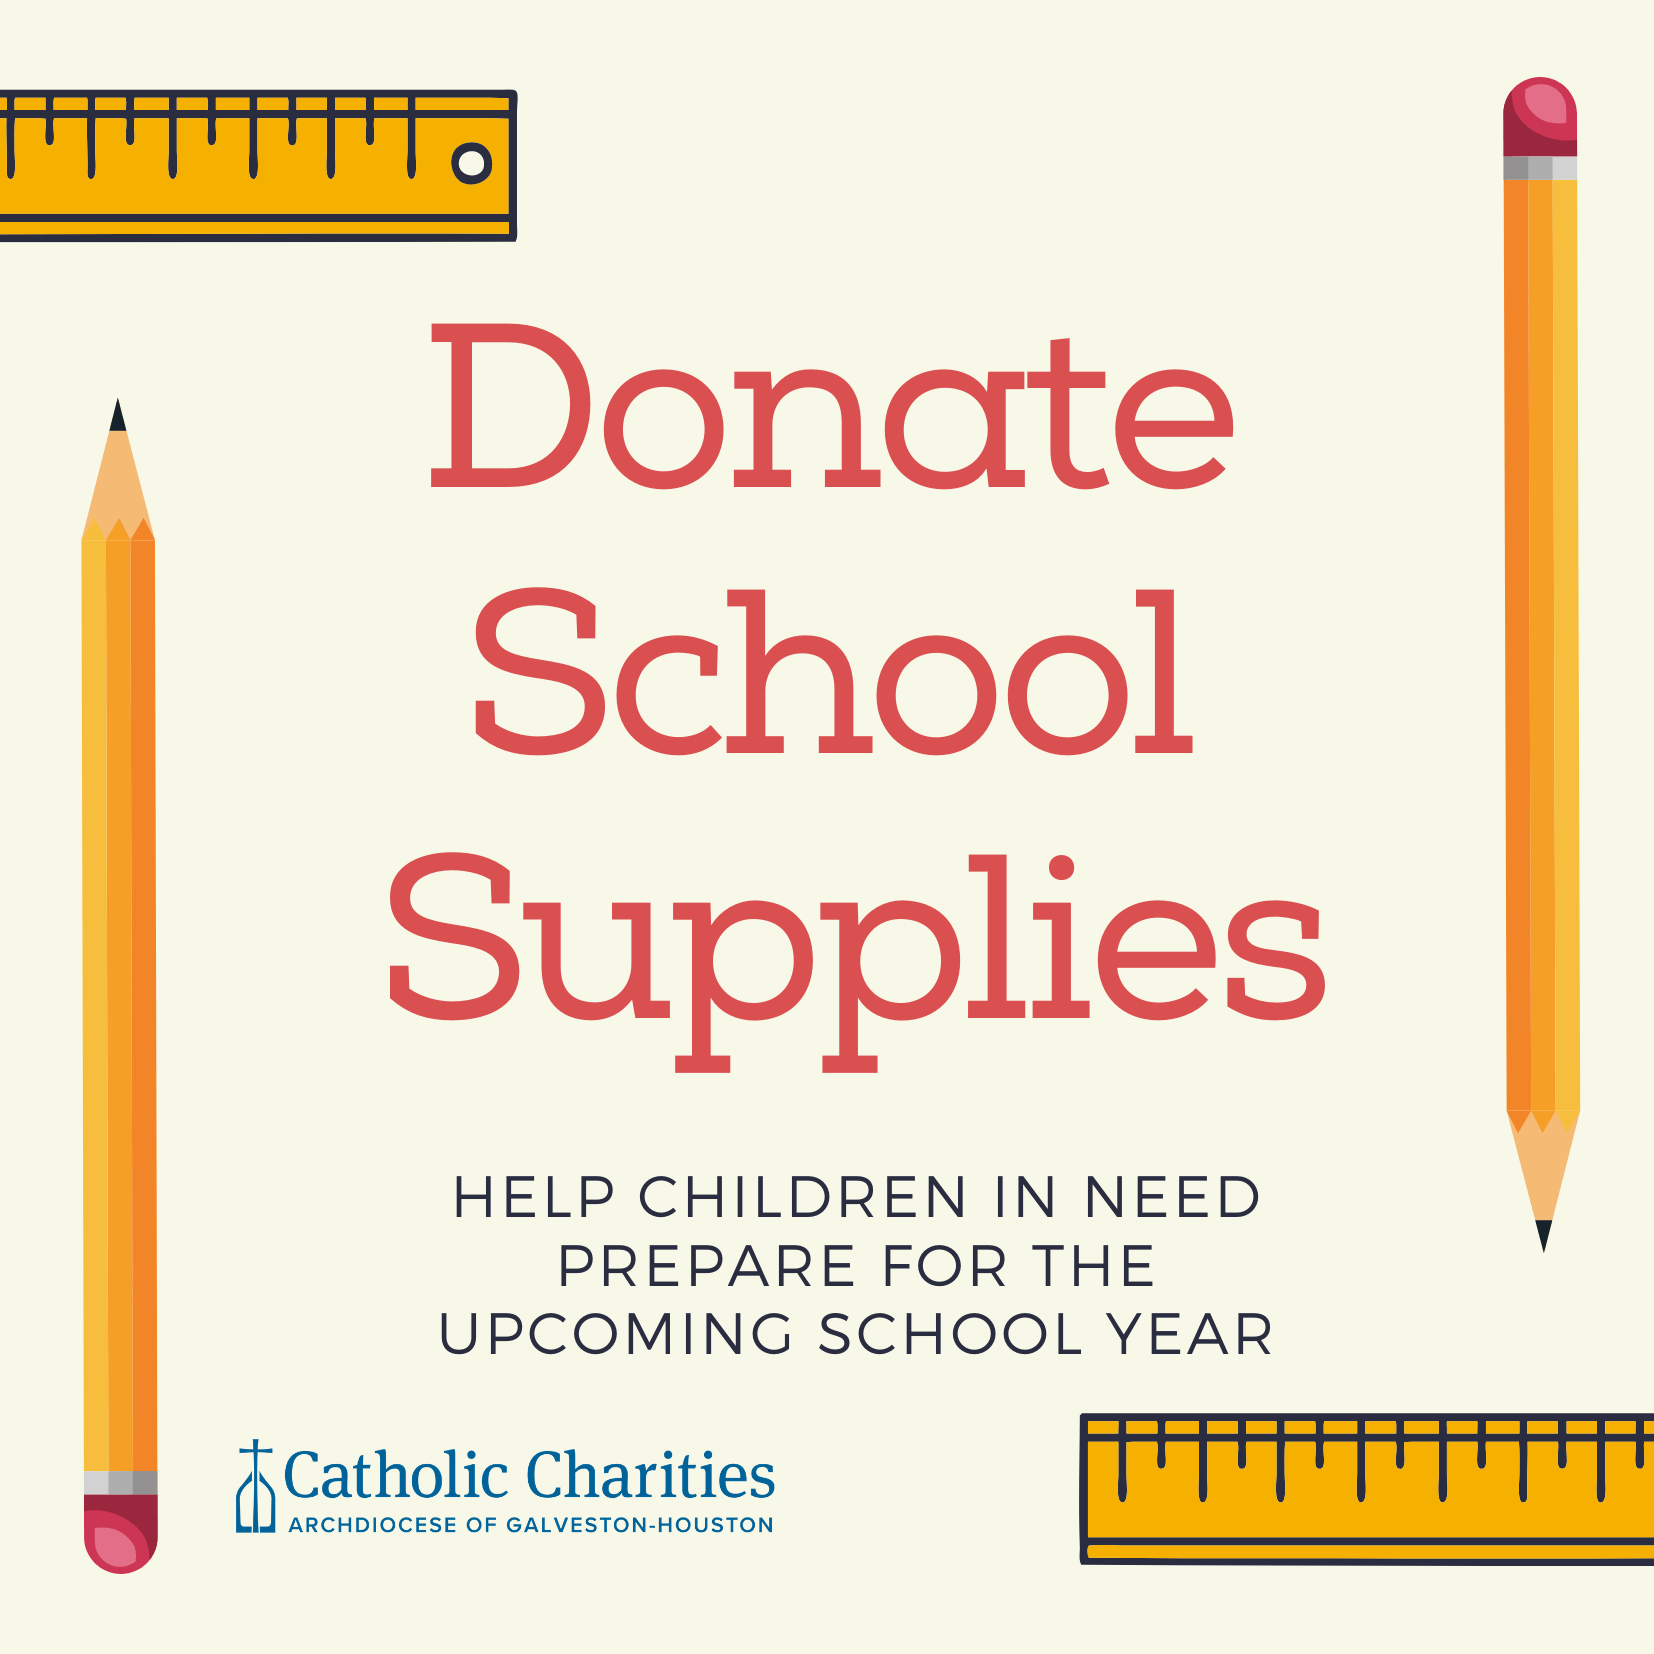 How To Donate School Supplies To Children In Need